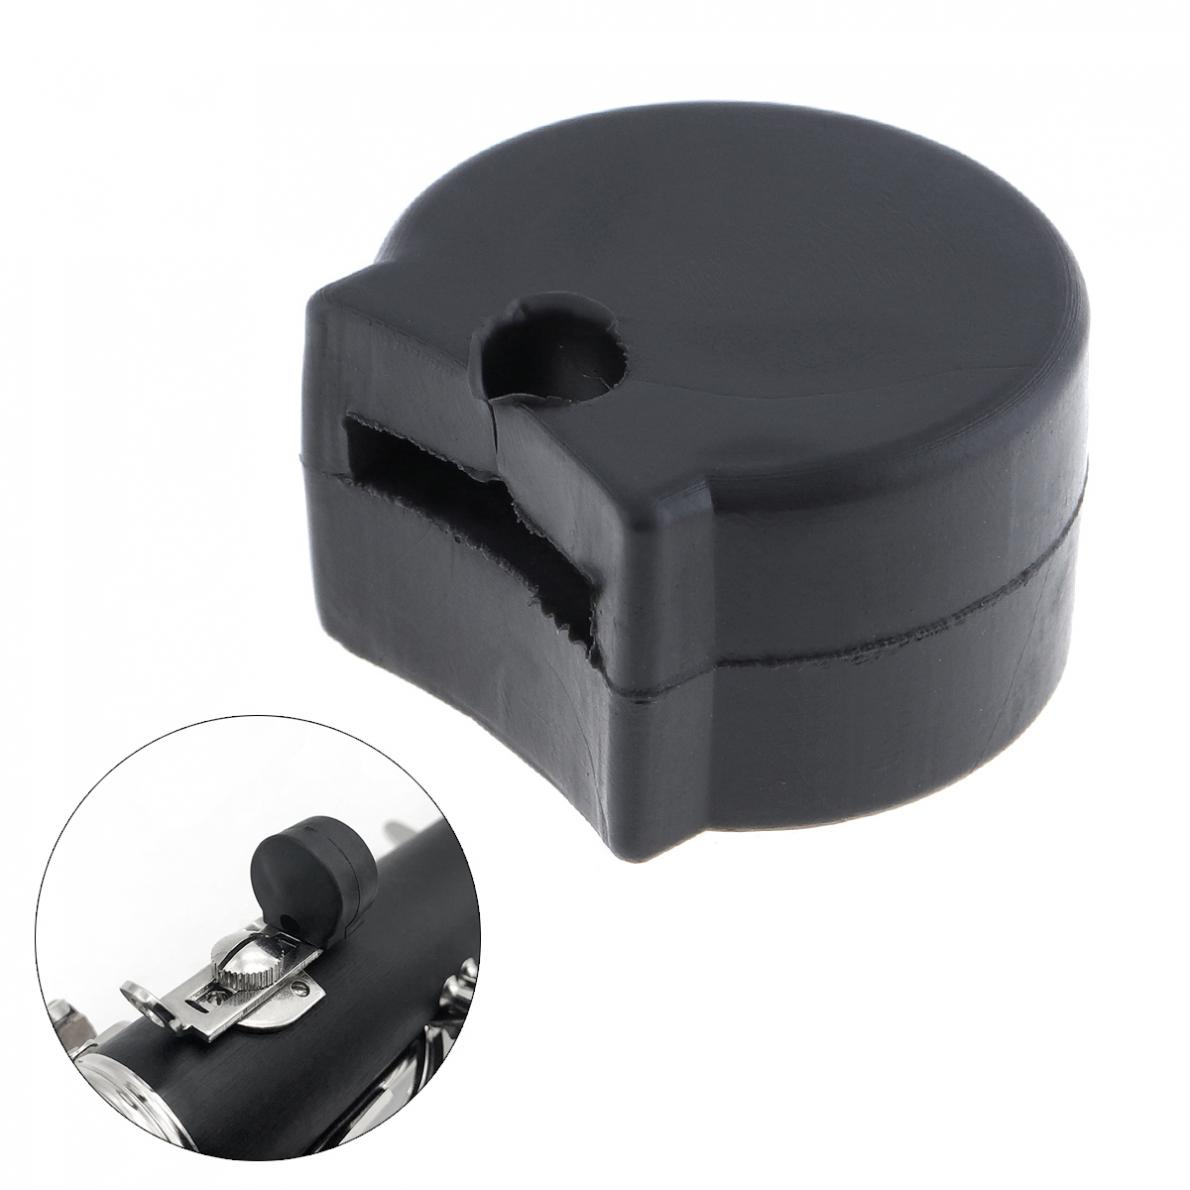 Rubber Clarinet Black Thumb Rest  Saver Cushion Pad Finger Protector Comfortable For Clarinet